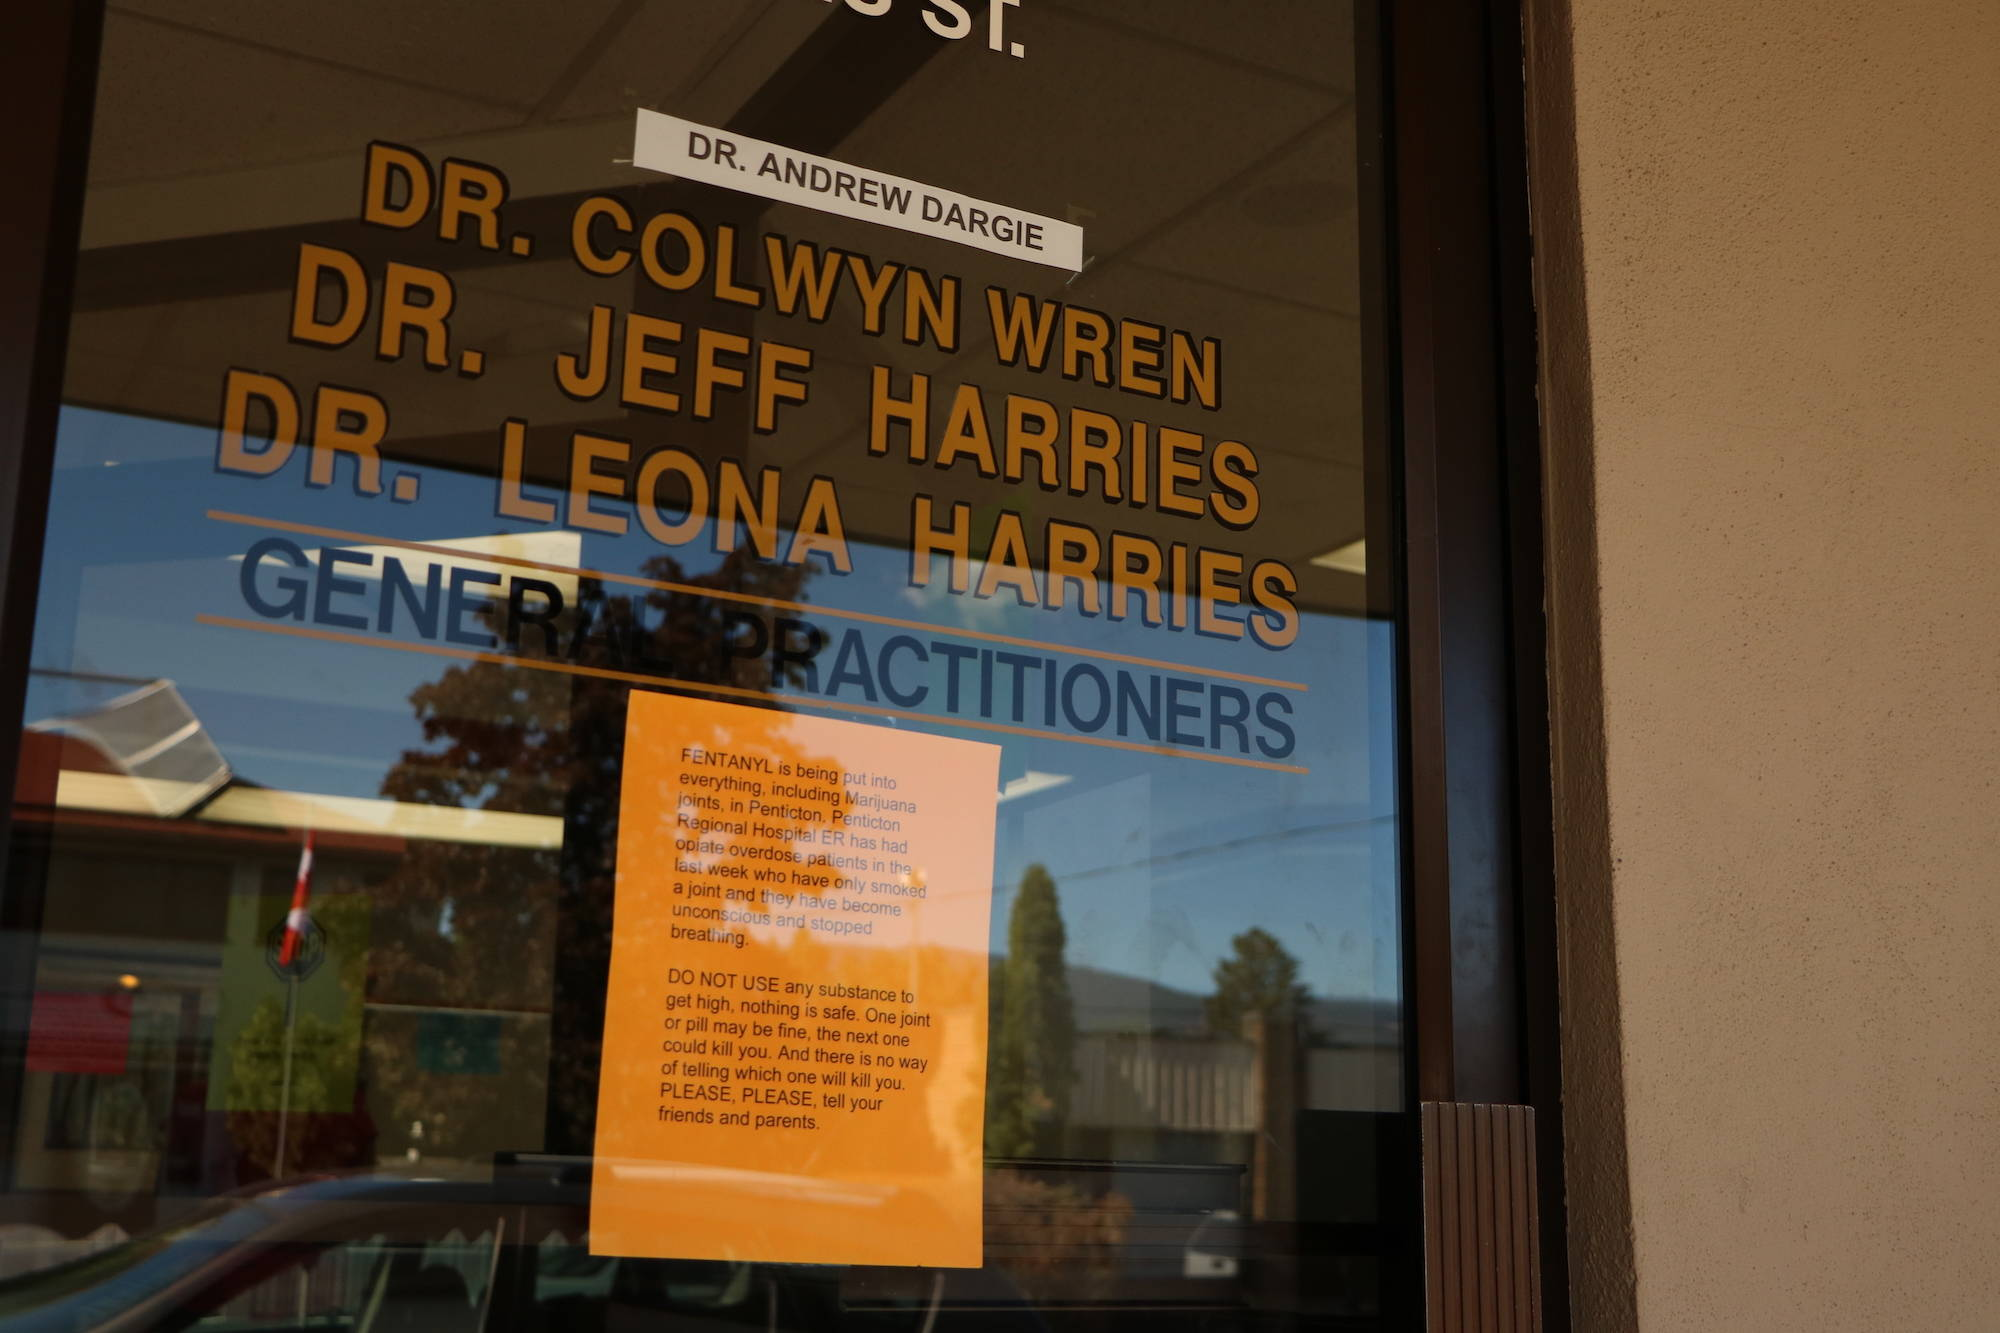 This notice was on a Penticton doctor's office as of Friday morning, indicating that fentanyl has been found to be mixed with marijuana. But health officials have roundly been critical of similar reports.                                Dustin Godfrey/Western News